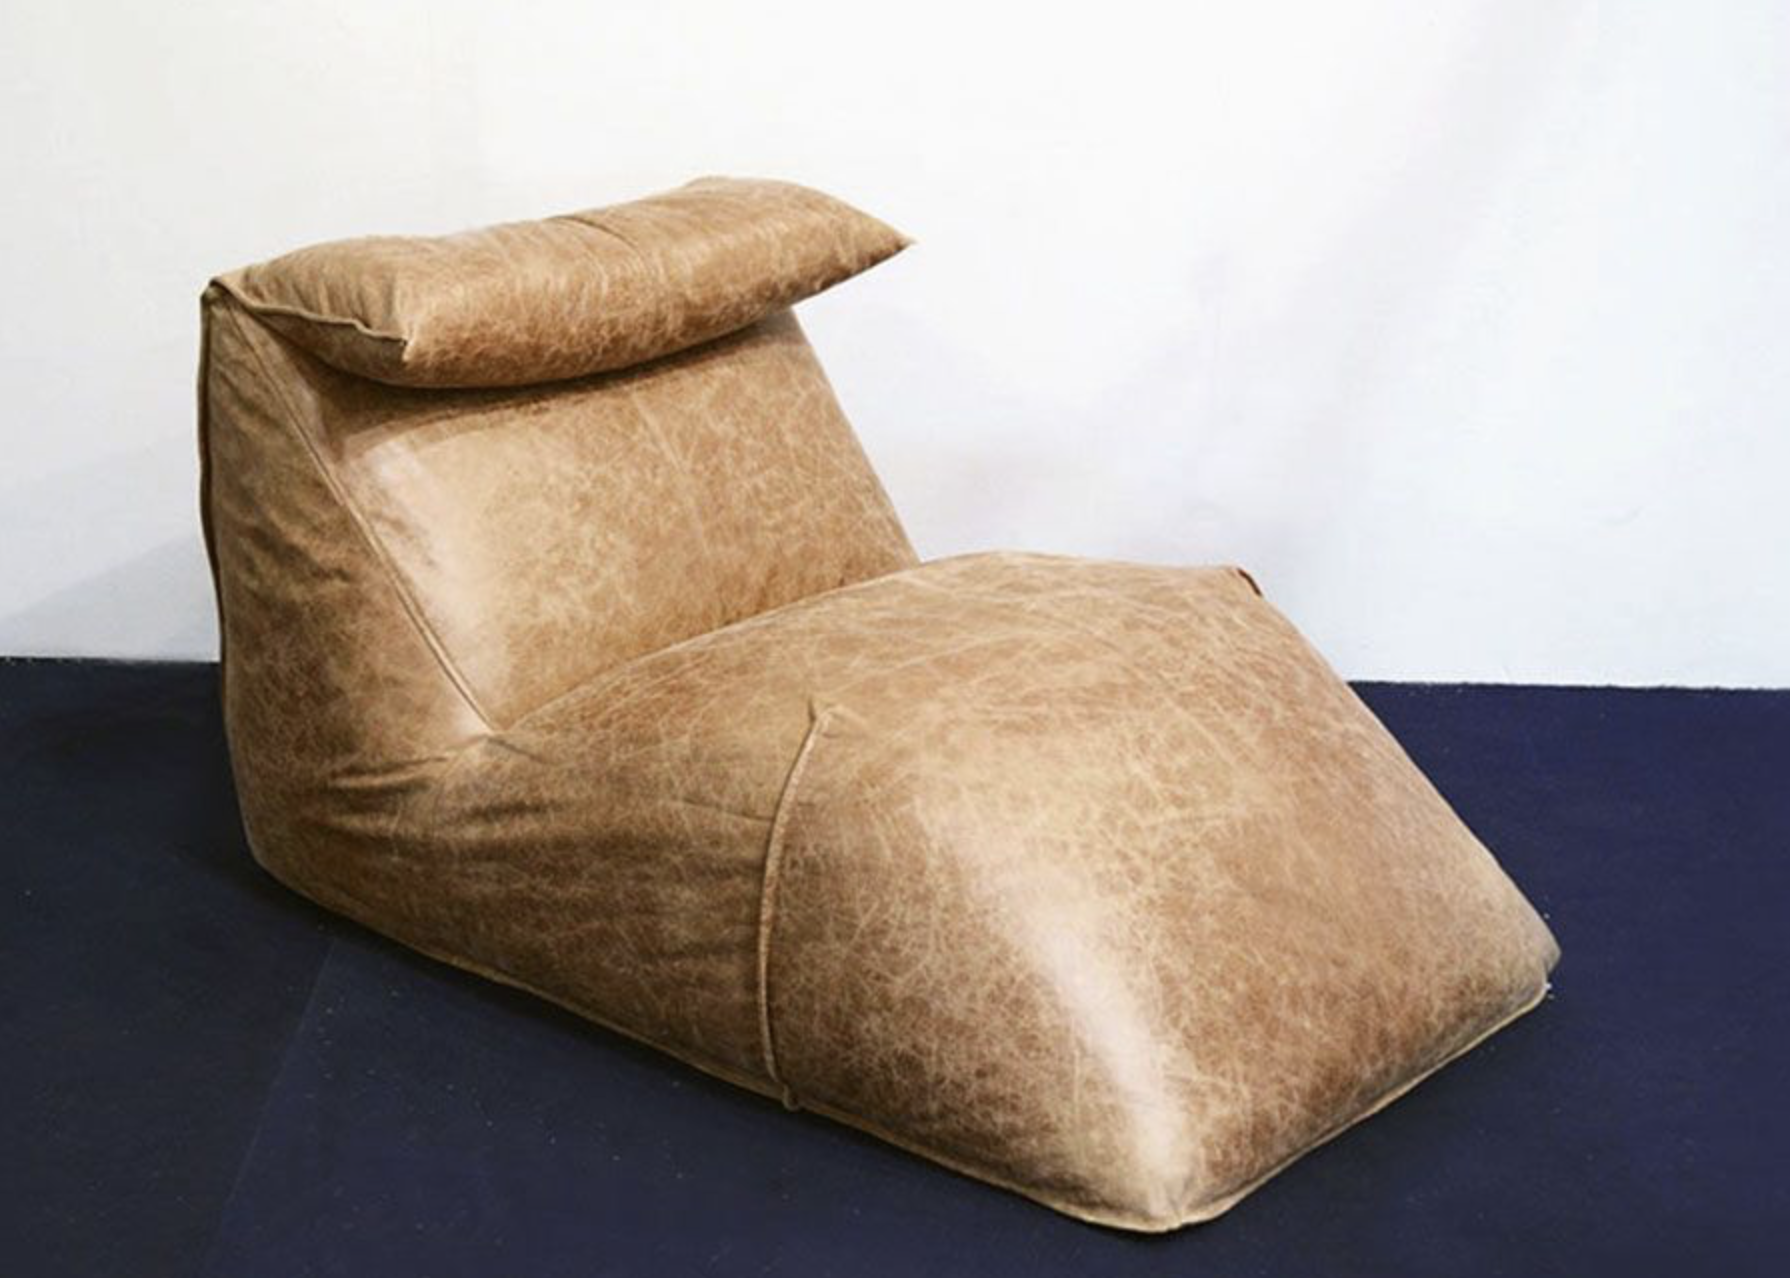 Le Bambole Leather Chaise Lounge by Mario Bellini for B&B Italia, 1970s